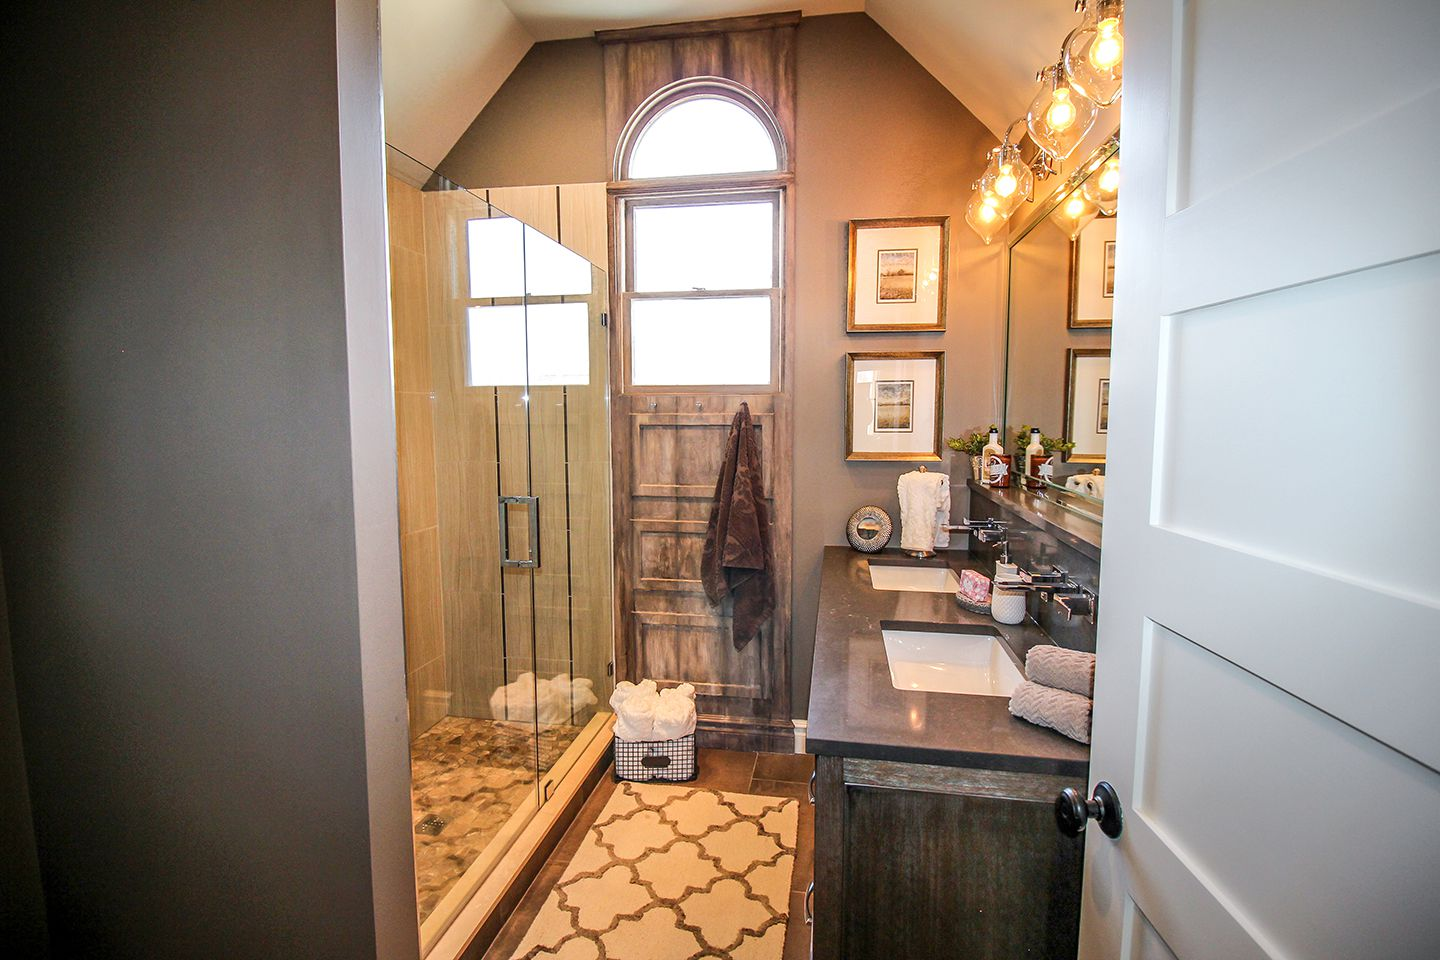 Five panel door as entry to master bathroom